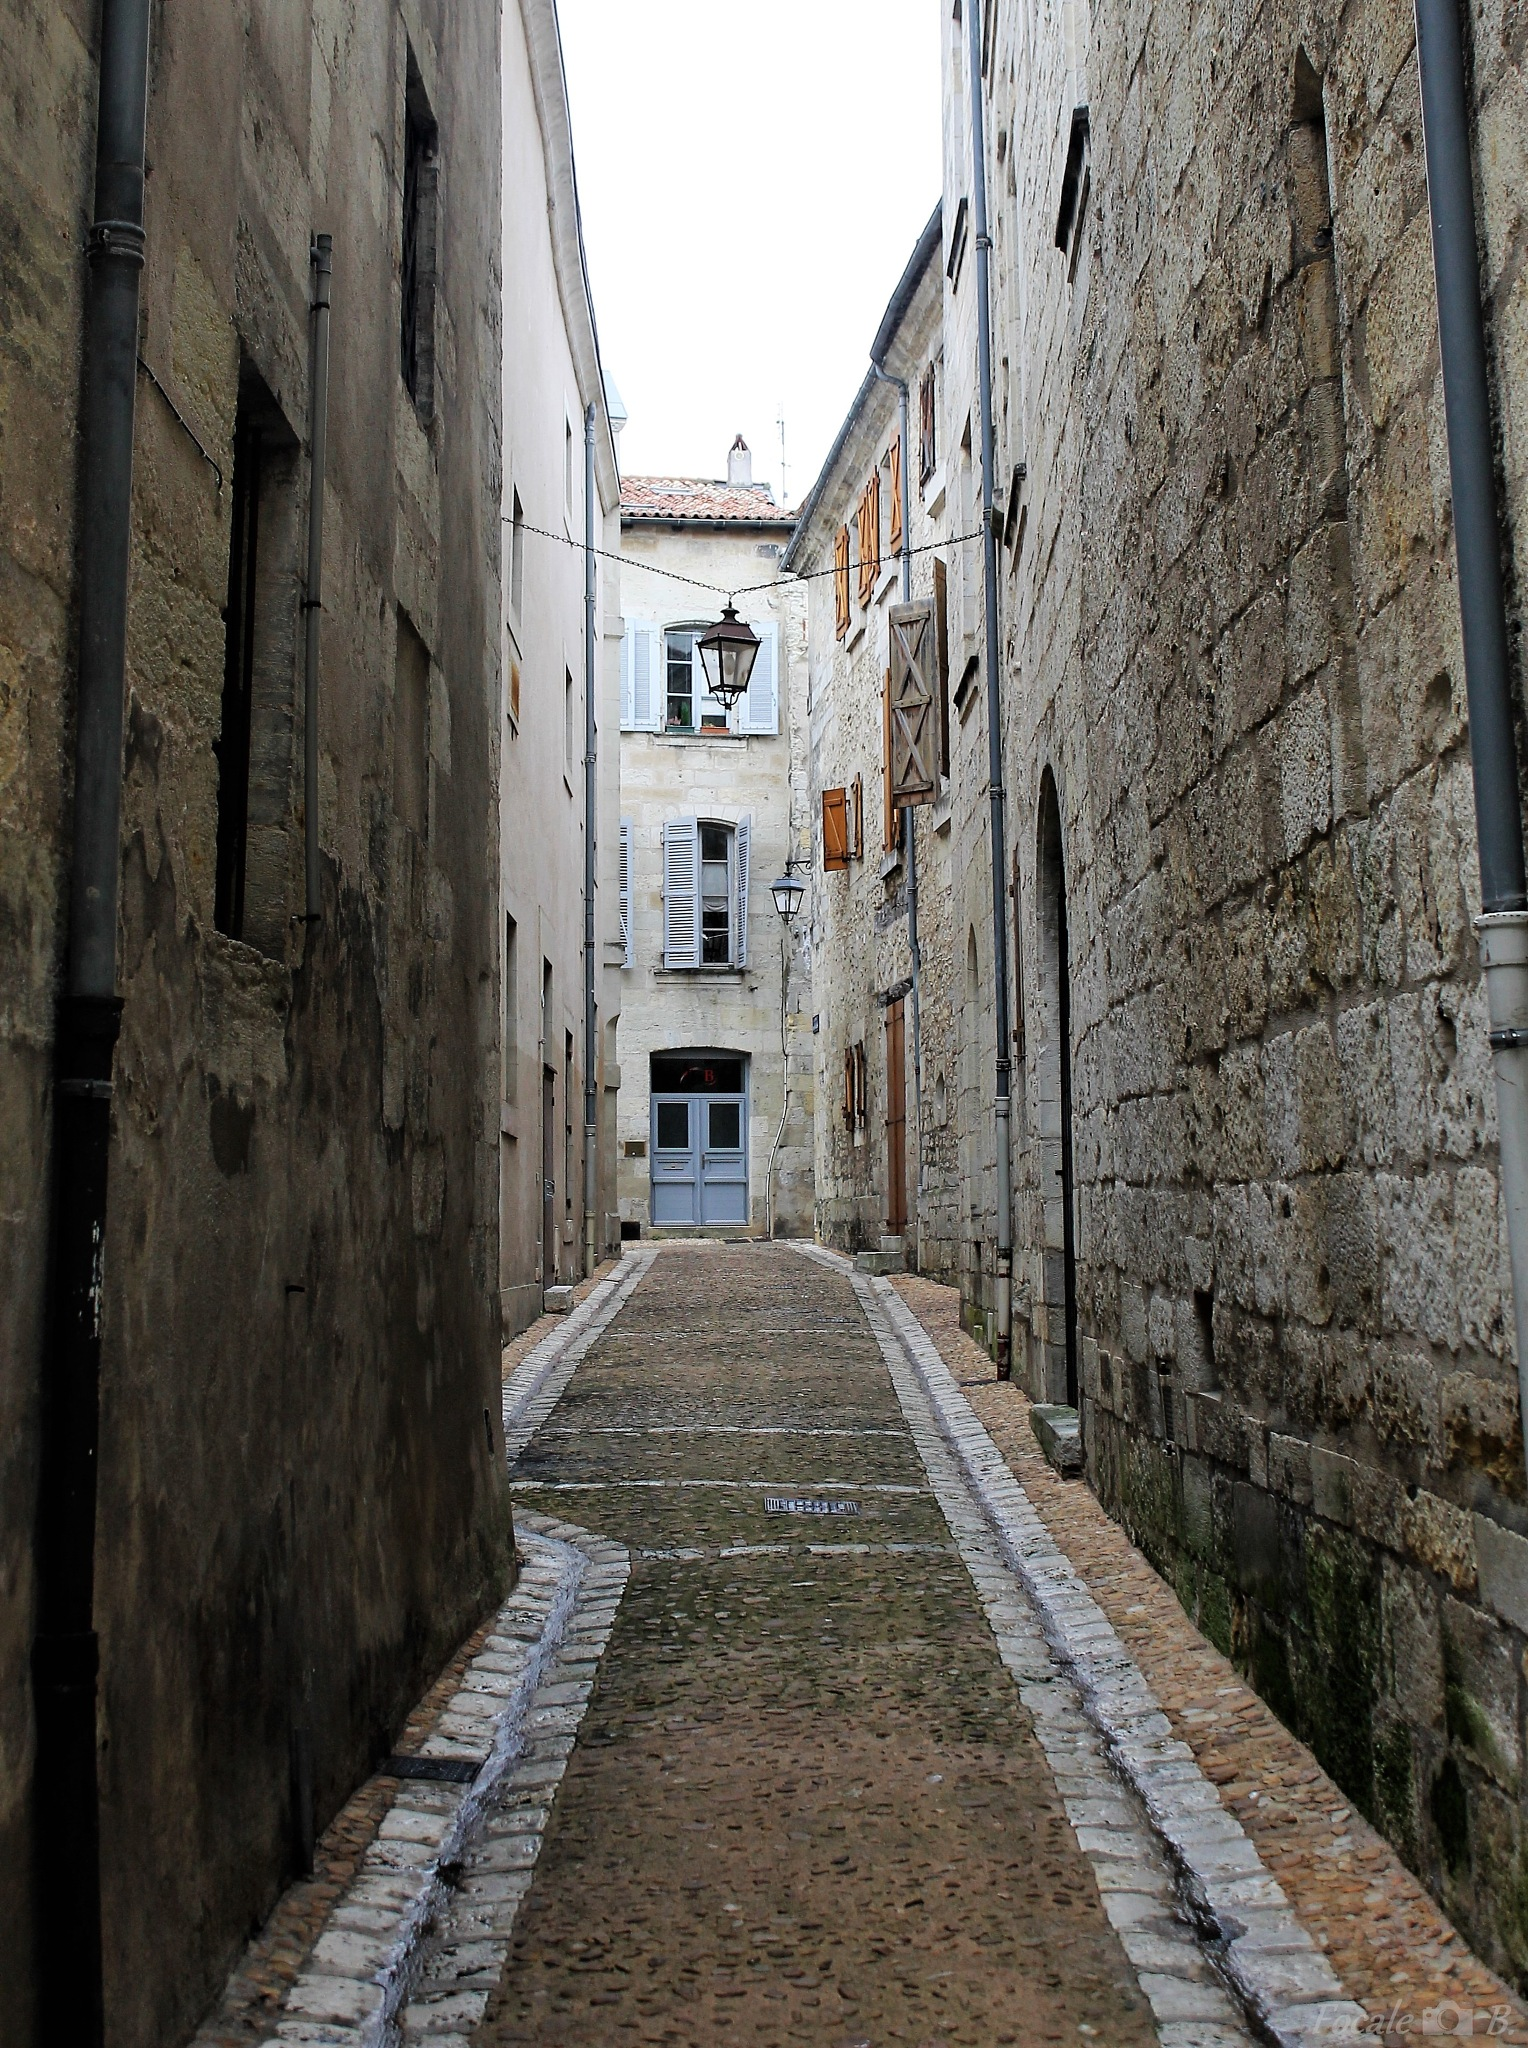 A street in Perigueux by Focale B.